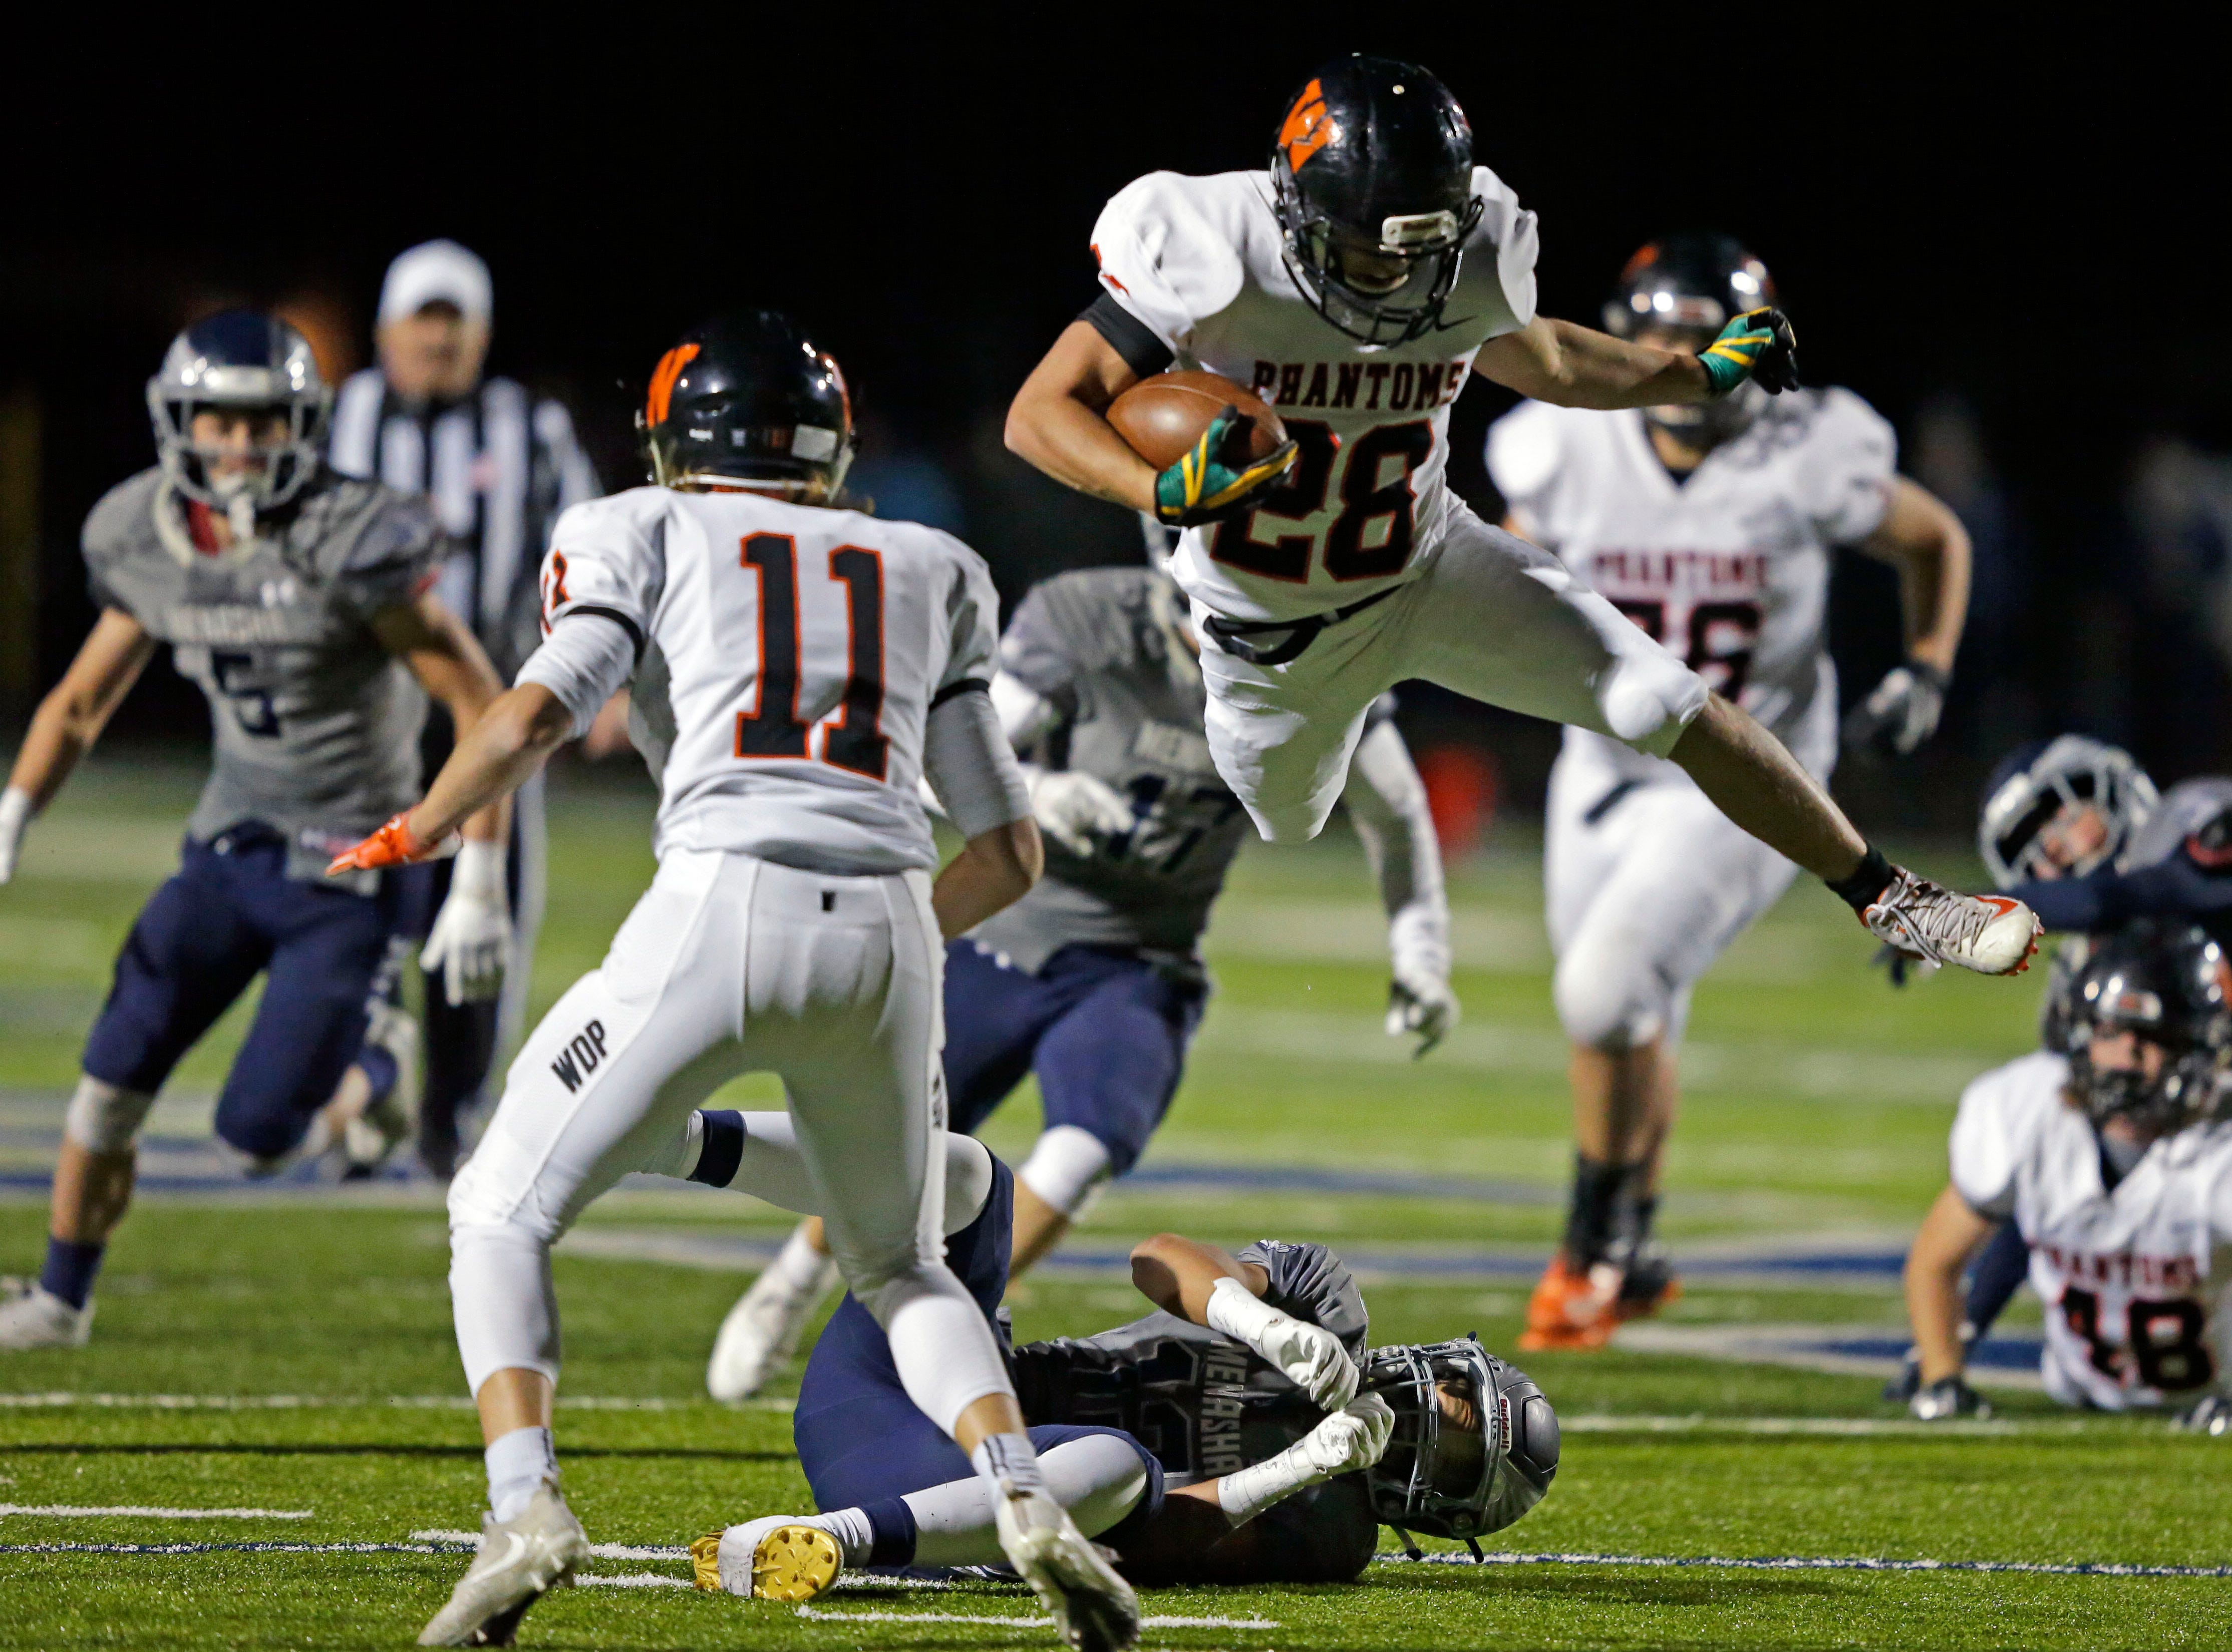 David Vanderlogt of West De Pere leaps over Leviathian Fleming of Menasha in a Bay Conference football game Friday, September 28, 2018, at Calder Stadium in Menasha, Wis.